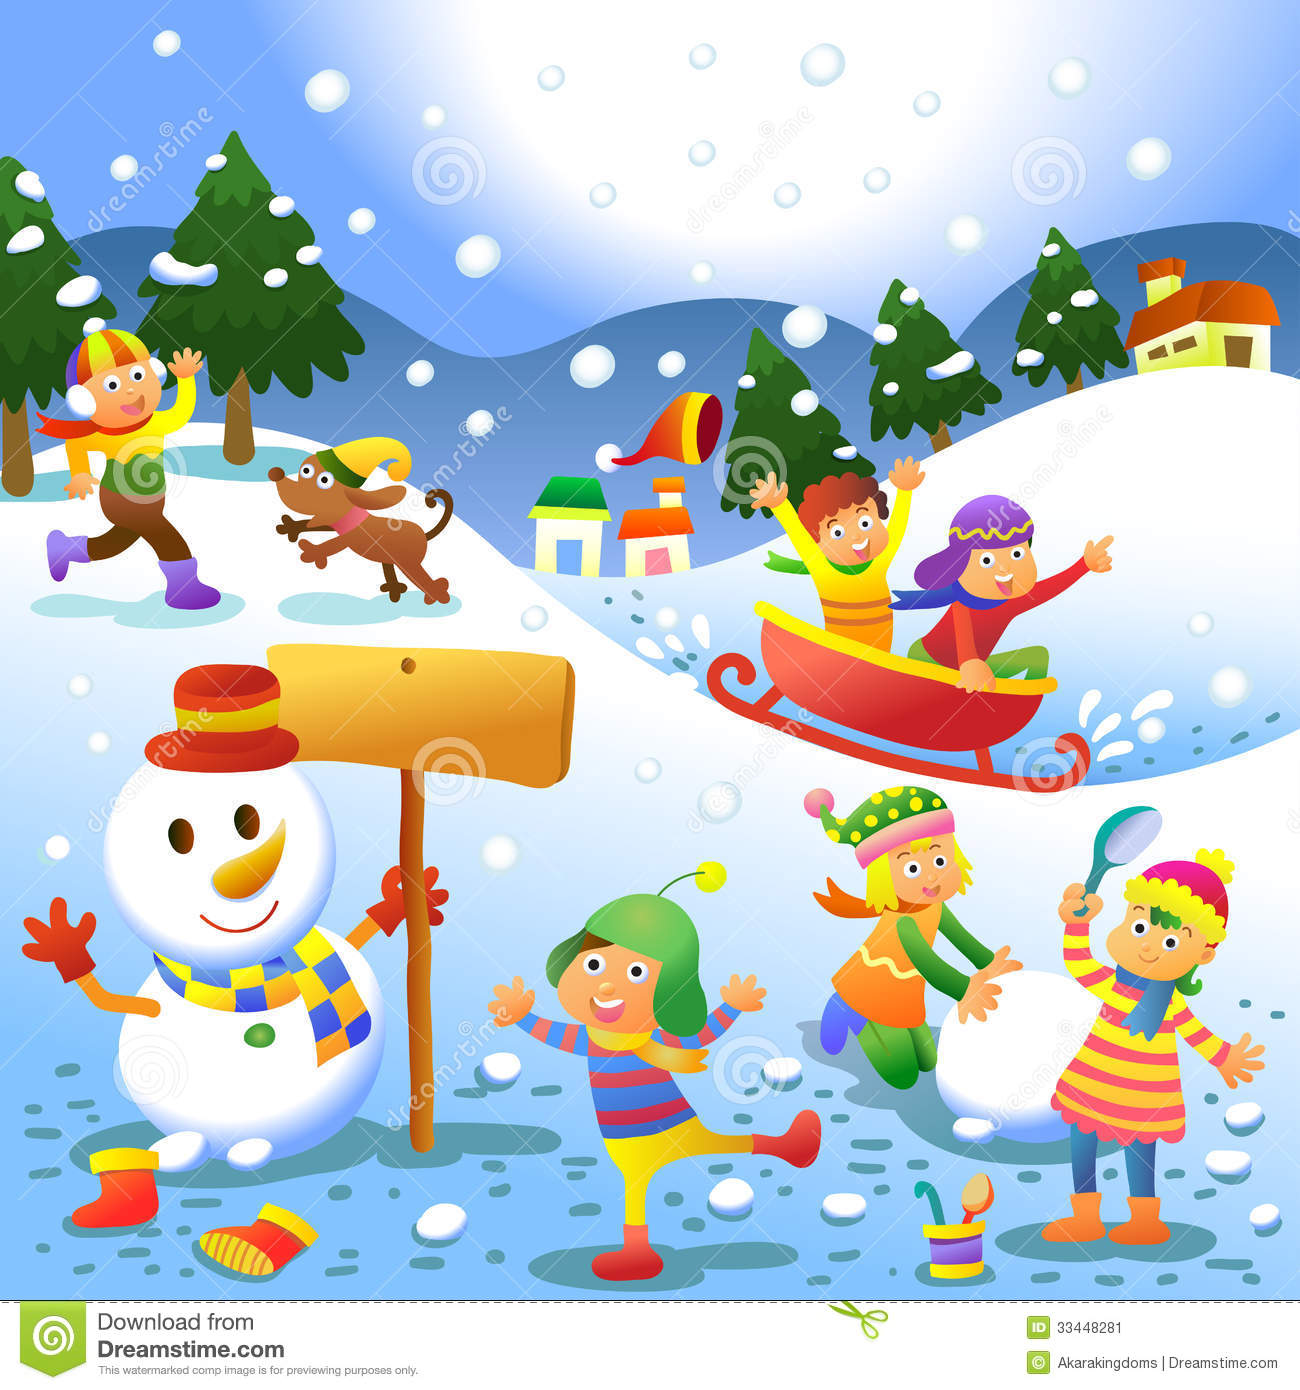 Cute Kids Playing Winter Games Stock Vector.